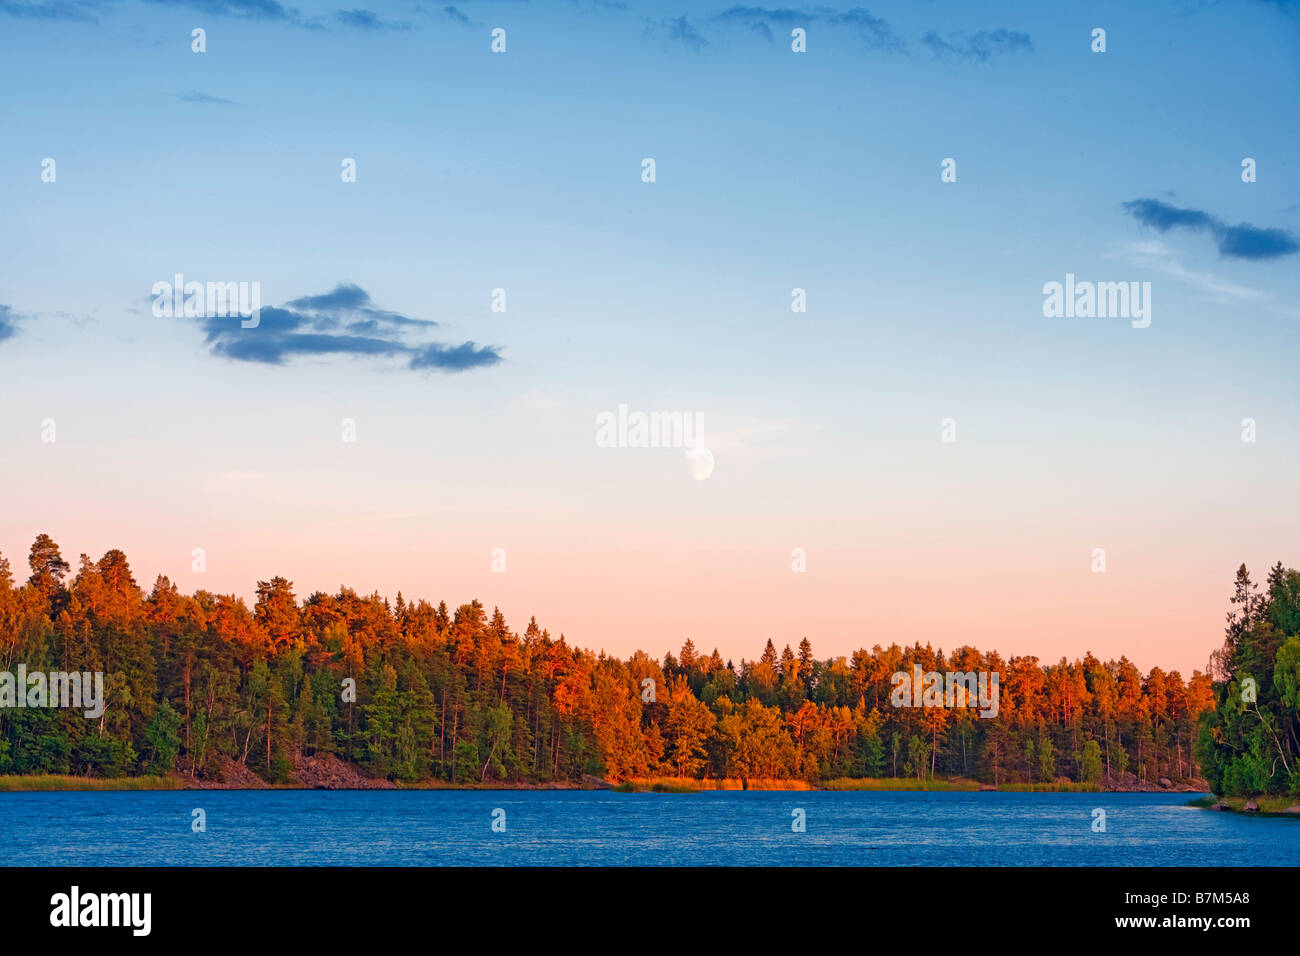 SWEDEN STOCKHOLM ARCHIPELAGO LANDSCAPE WITH FOREST AND WATER - Stock Image